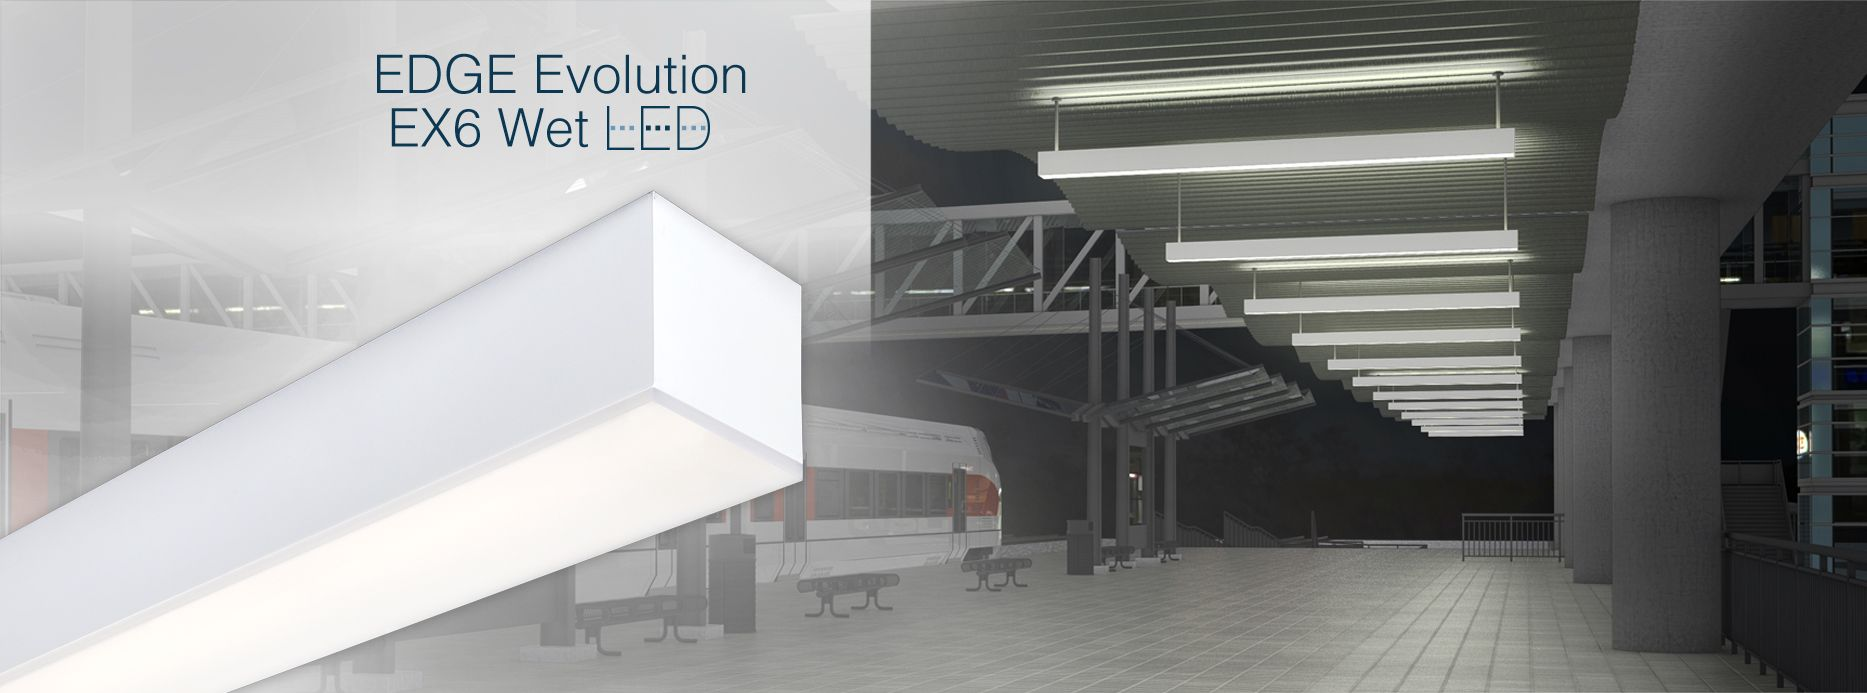 pinnacle architectural lighting edge evolution ex6 wet led most